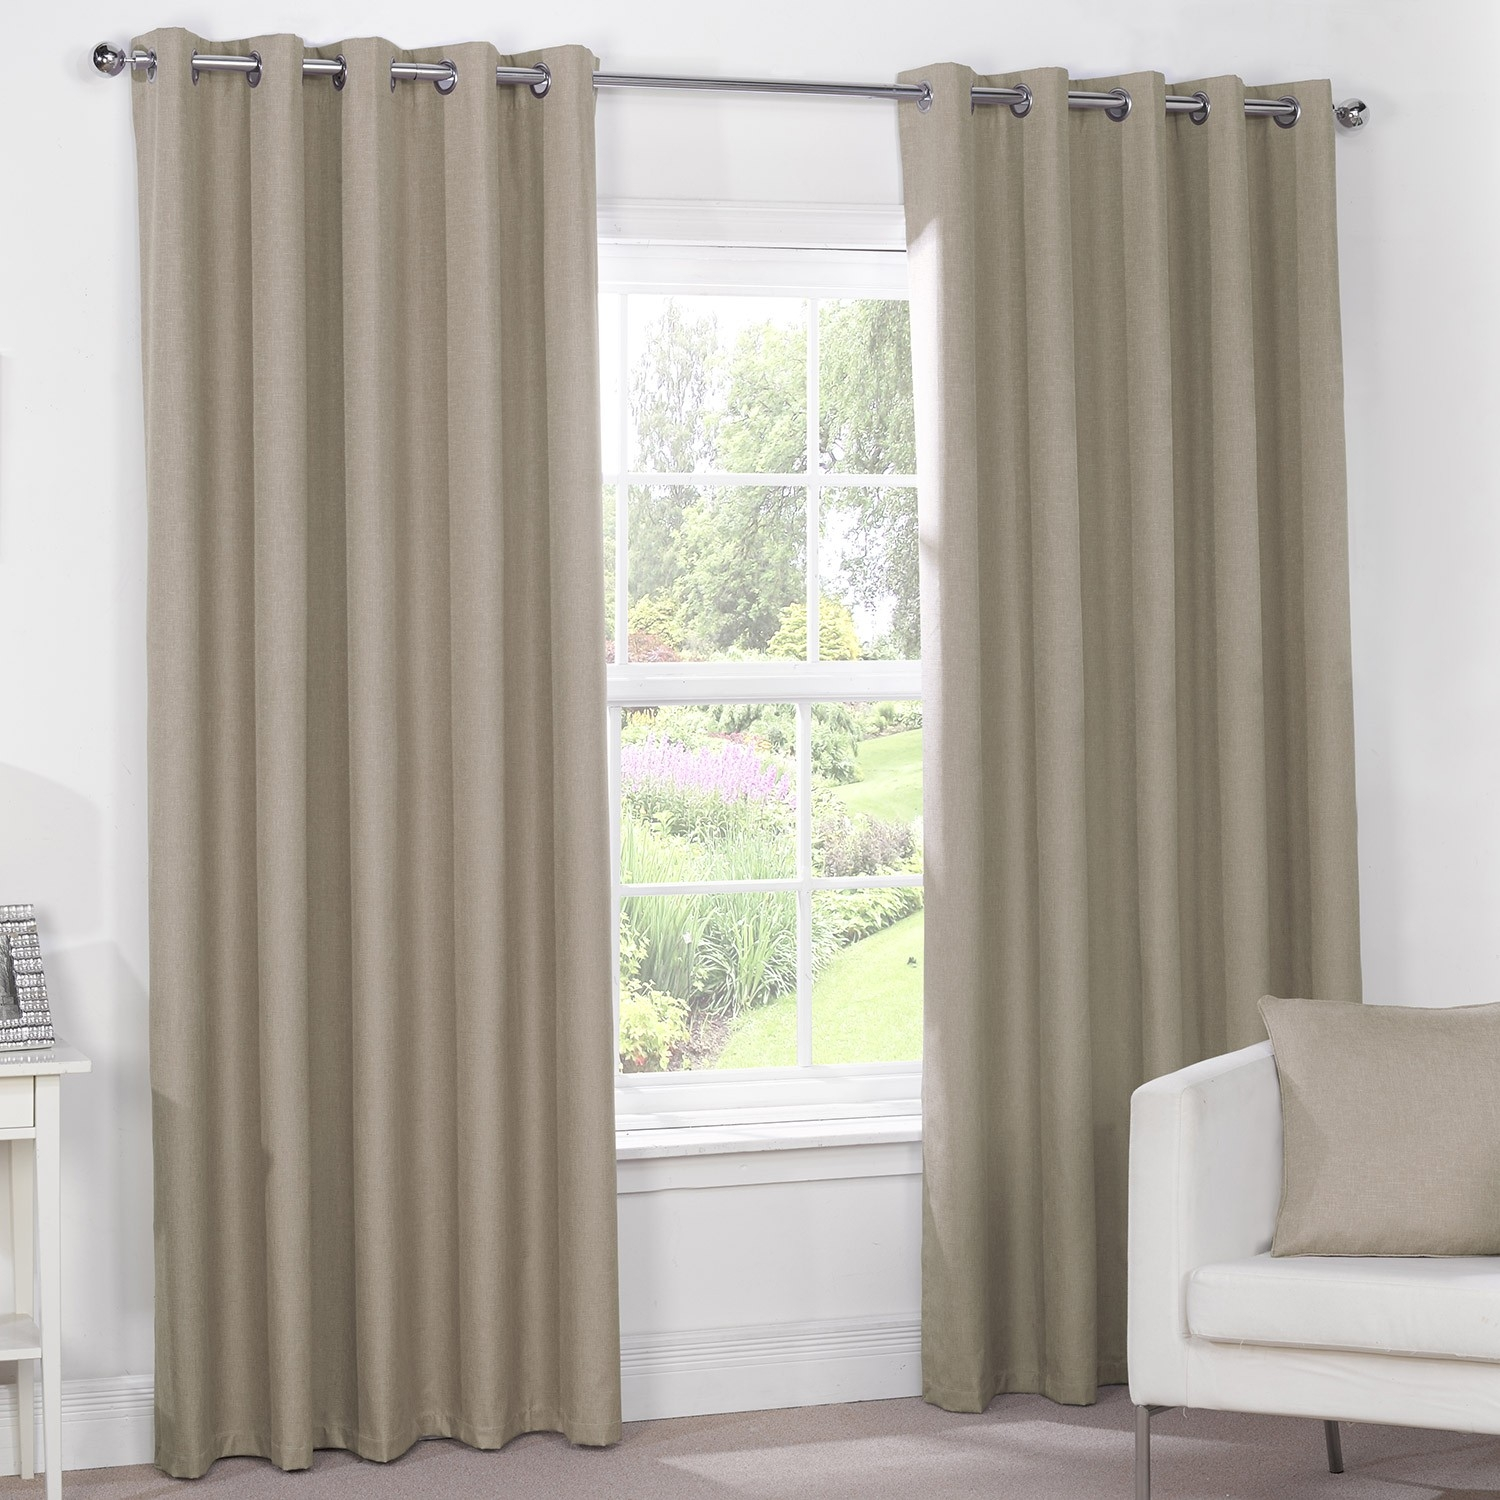 Extra Long Blackout Eyelet Thermal Curtains Julian Charles Pertaining To Long Eyelet Curtains (Image 4 of 15)